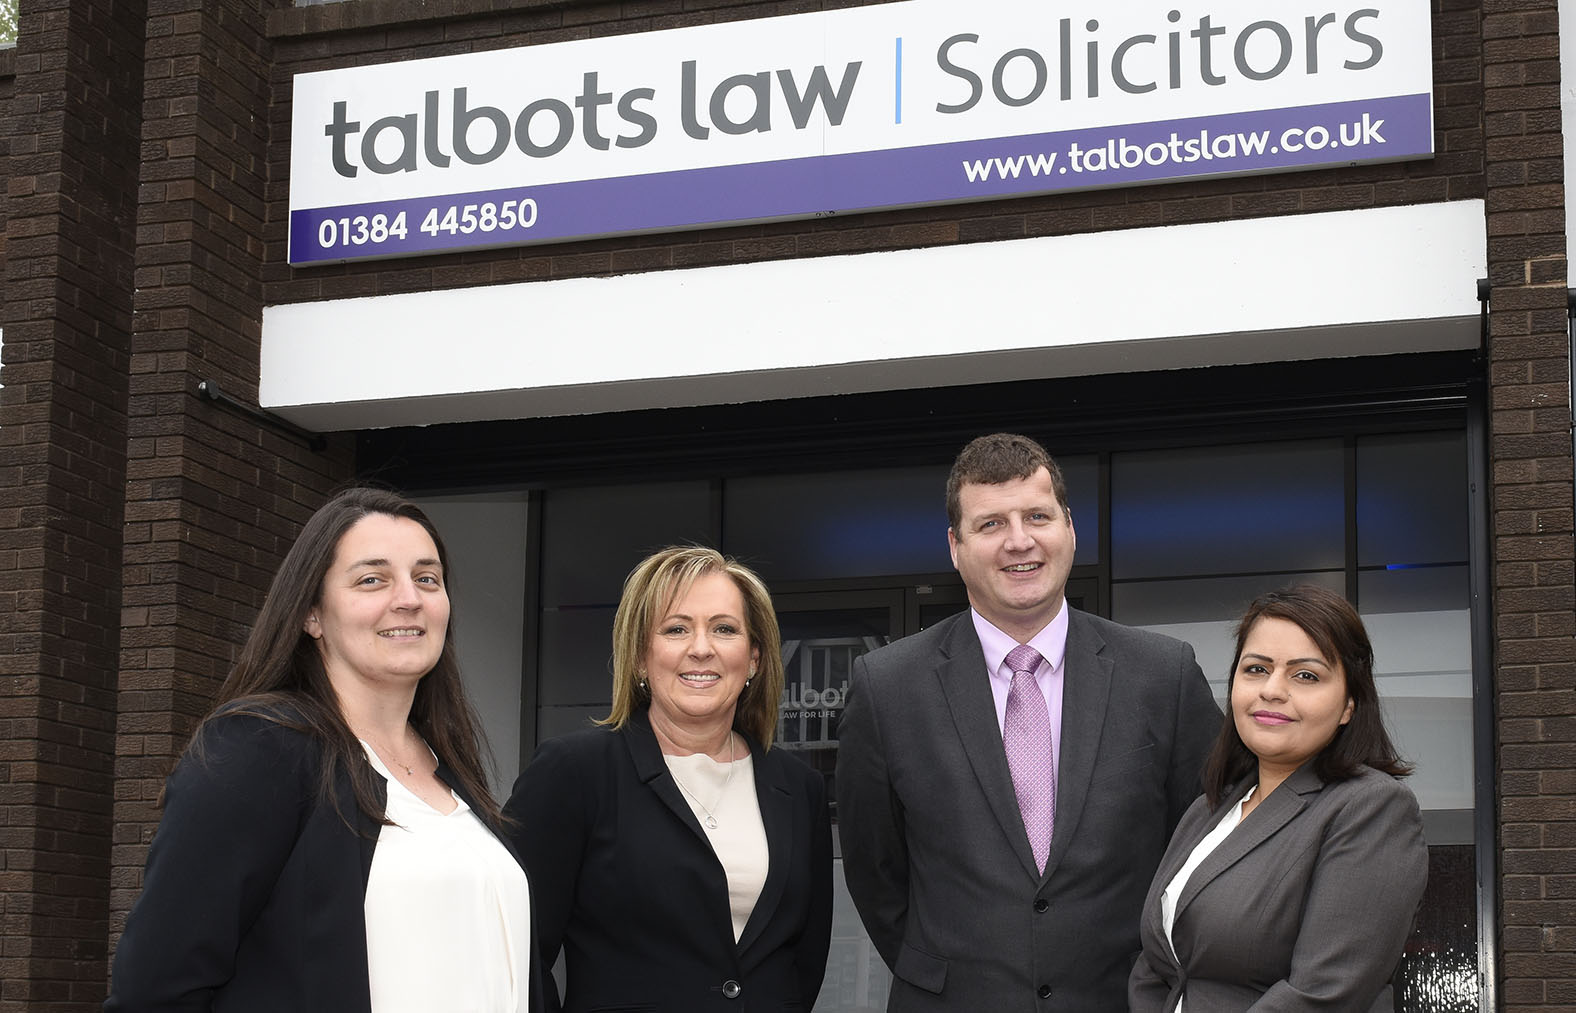 'Star' Employer recognition for Talbots Law